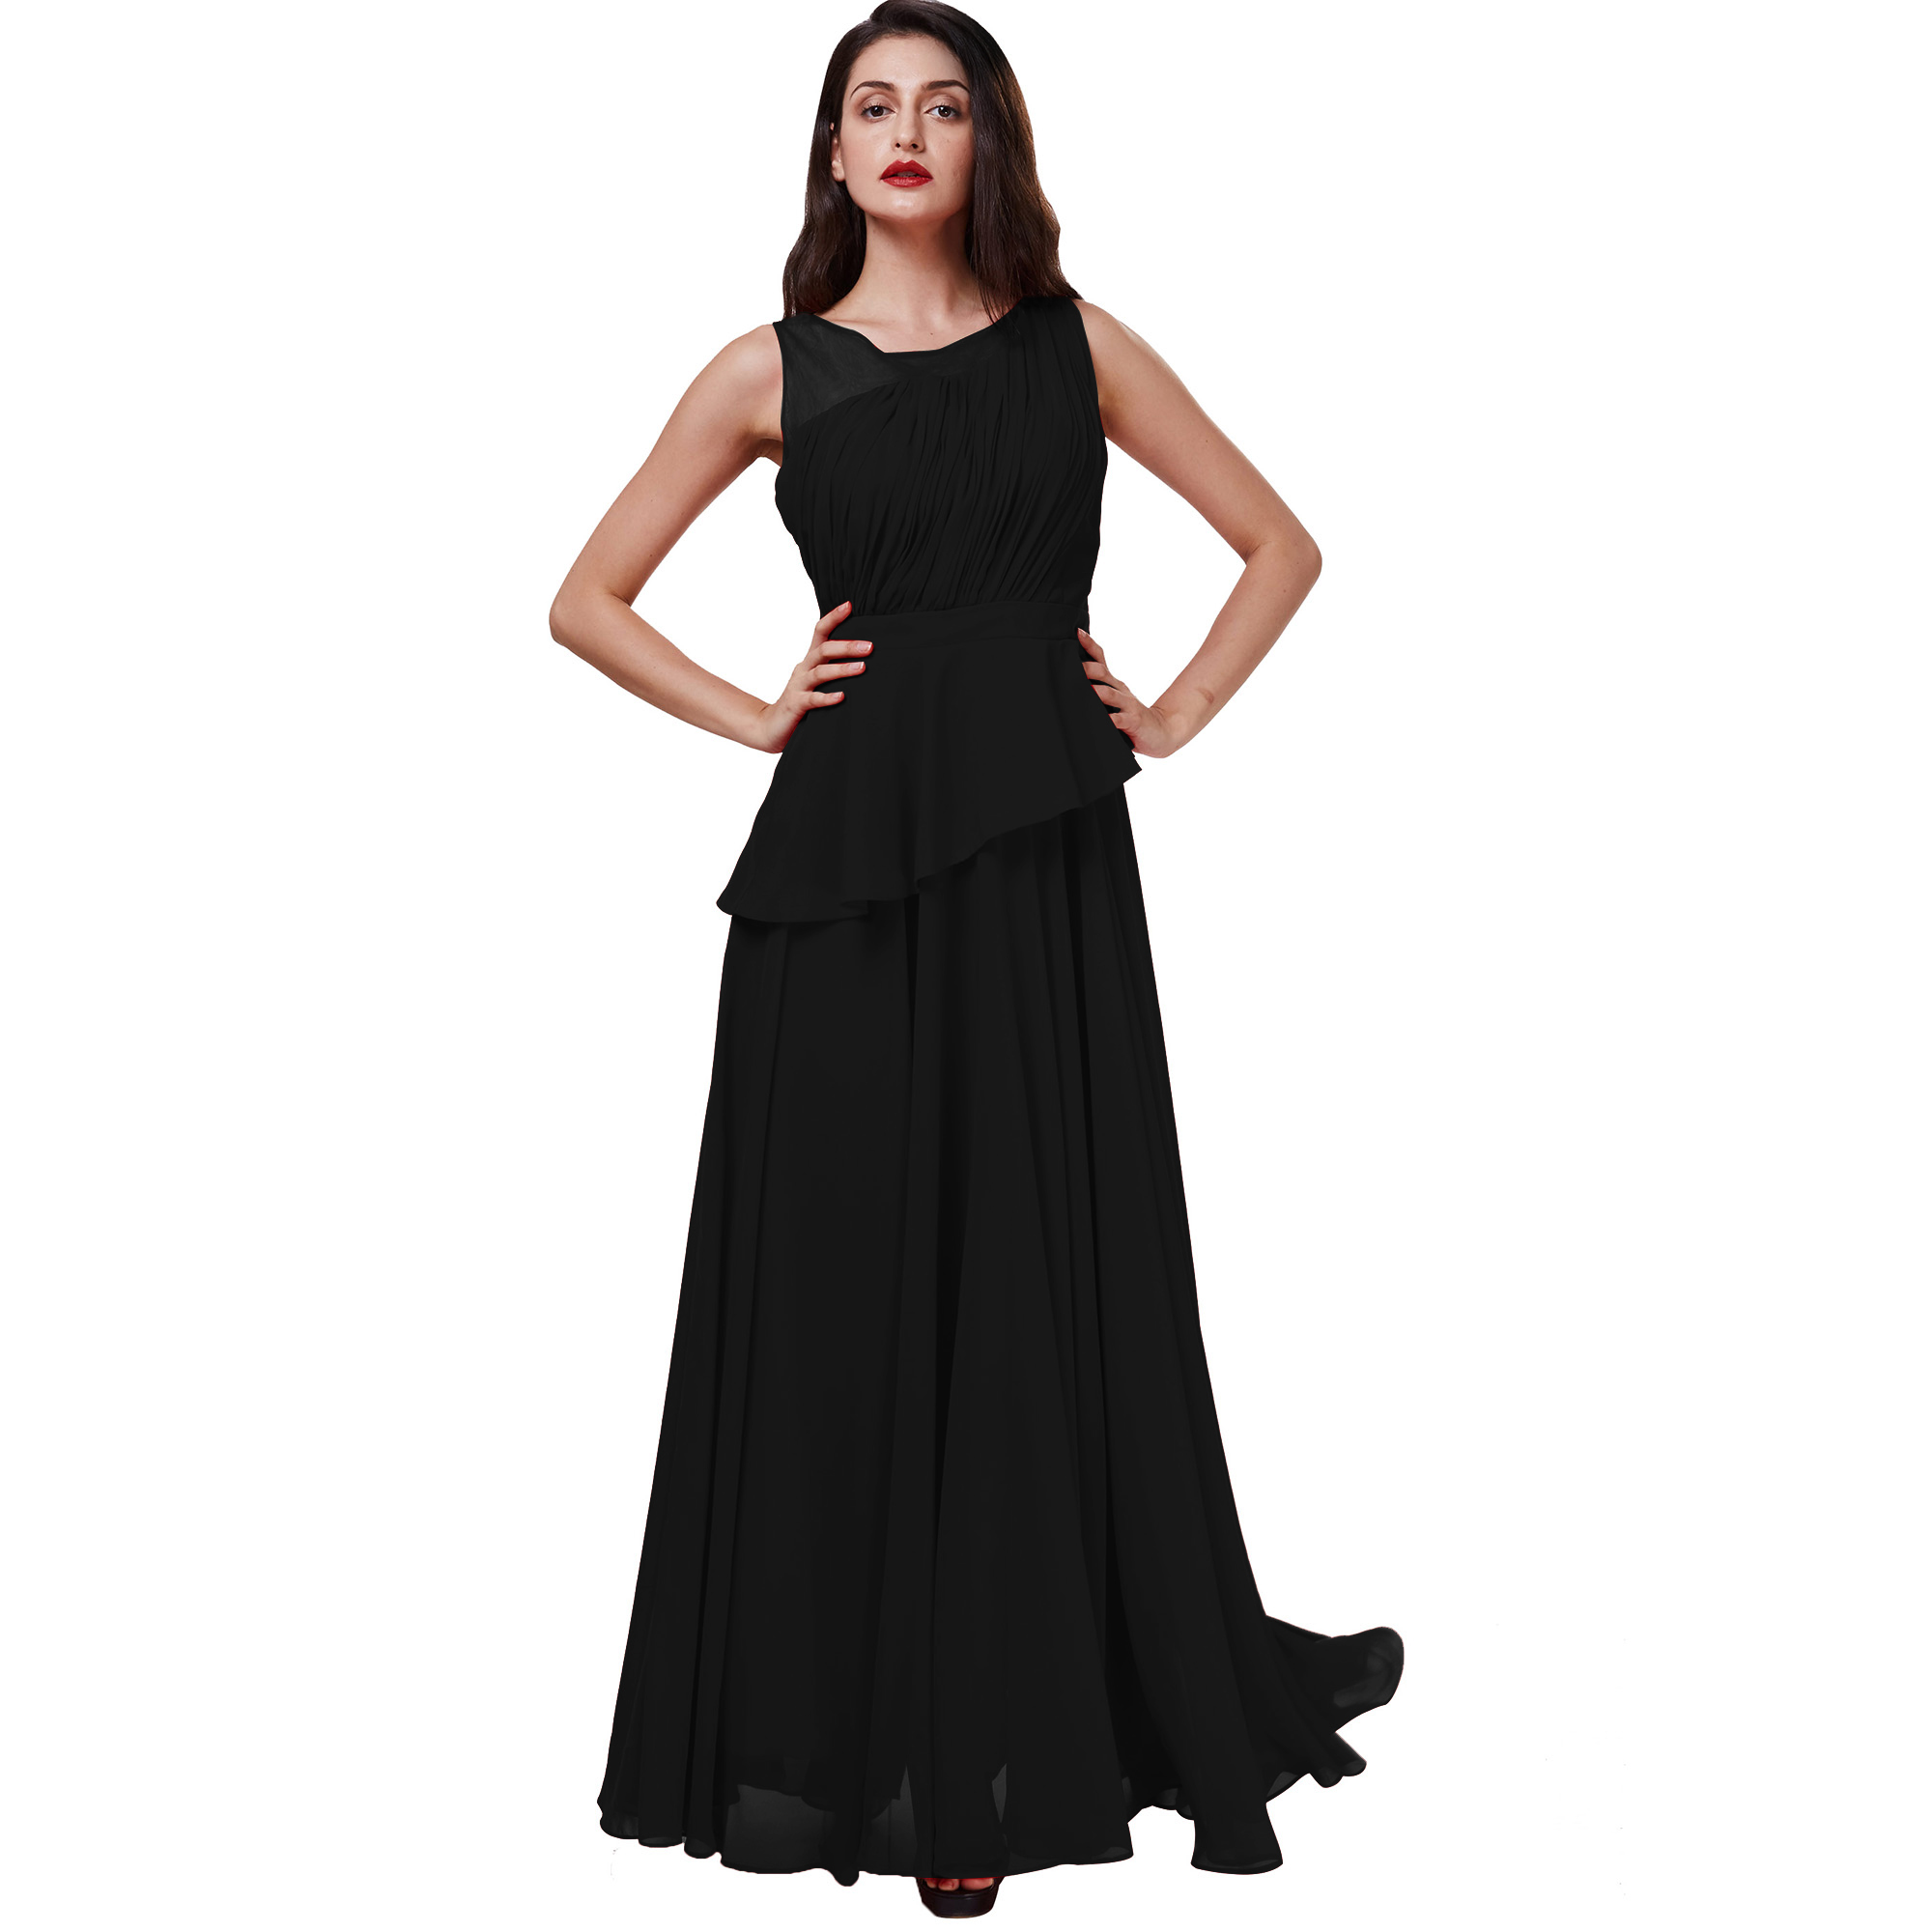 Dressv scoop long evening dress red sleeveless a line floor length dresses women black chiffon draped formal prom evening dress